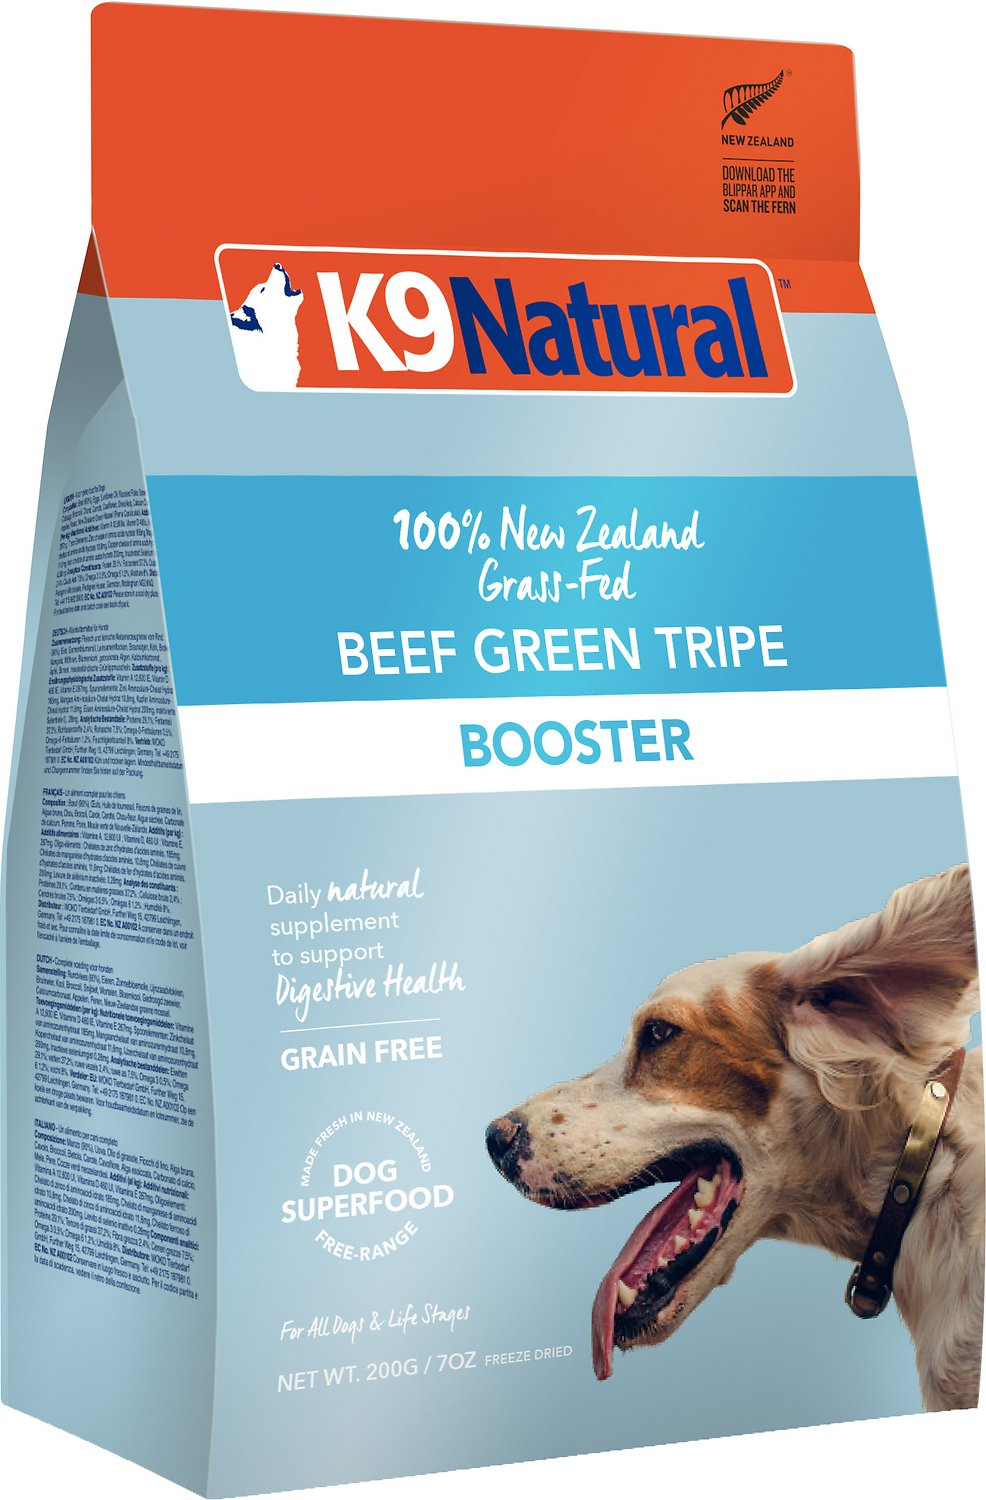 K9 Natural Booster Beef Green Tripe Grain-Free Freeze-Dried Dog Supplement, 8.8-oz bag (Weights: 8.8 ounces) Image